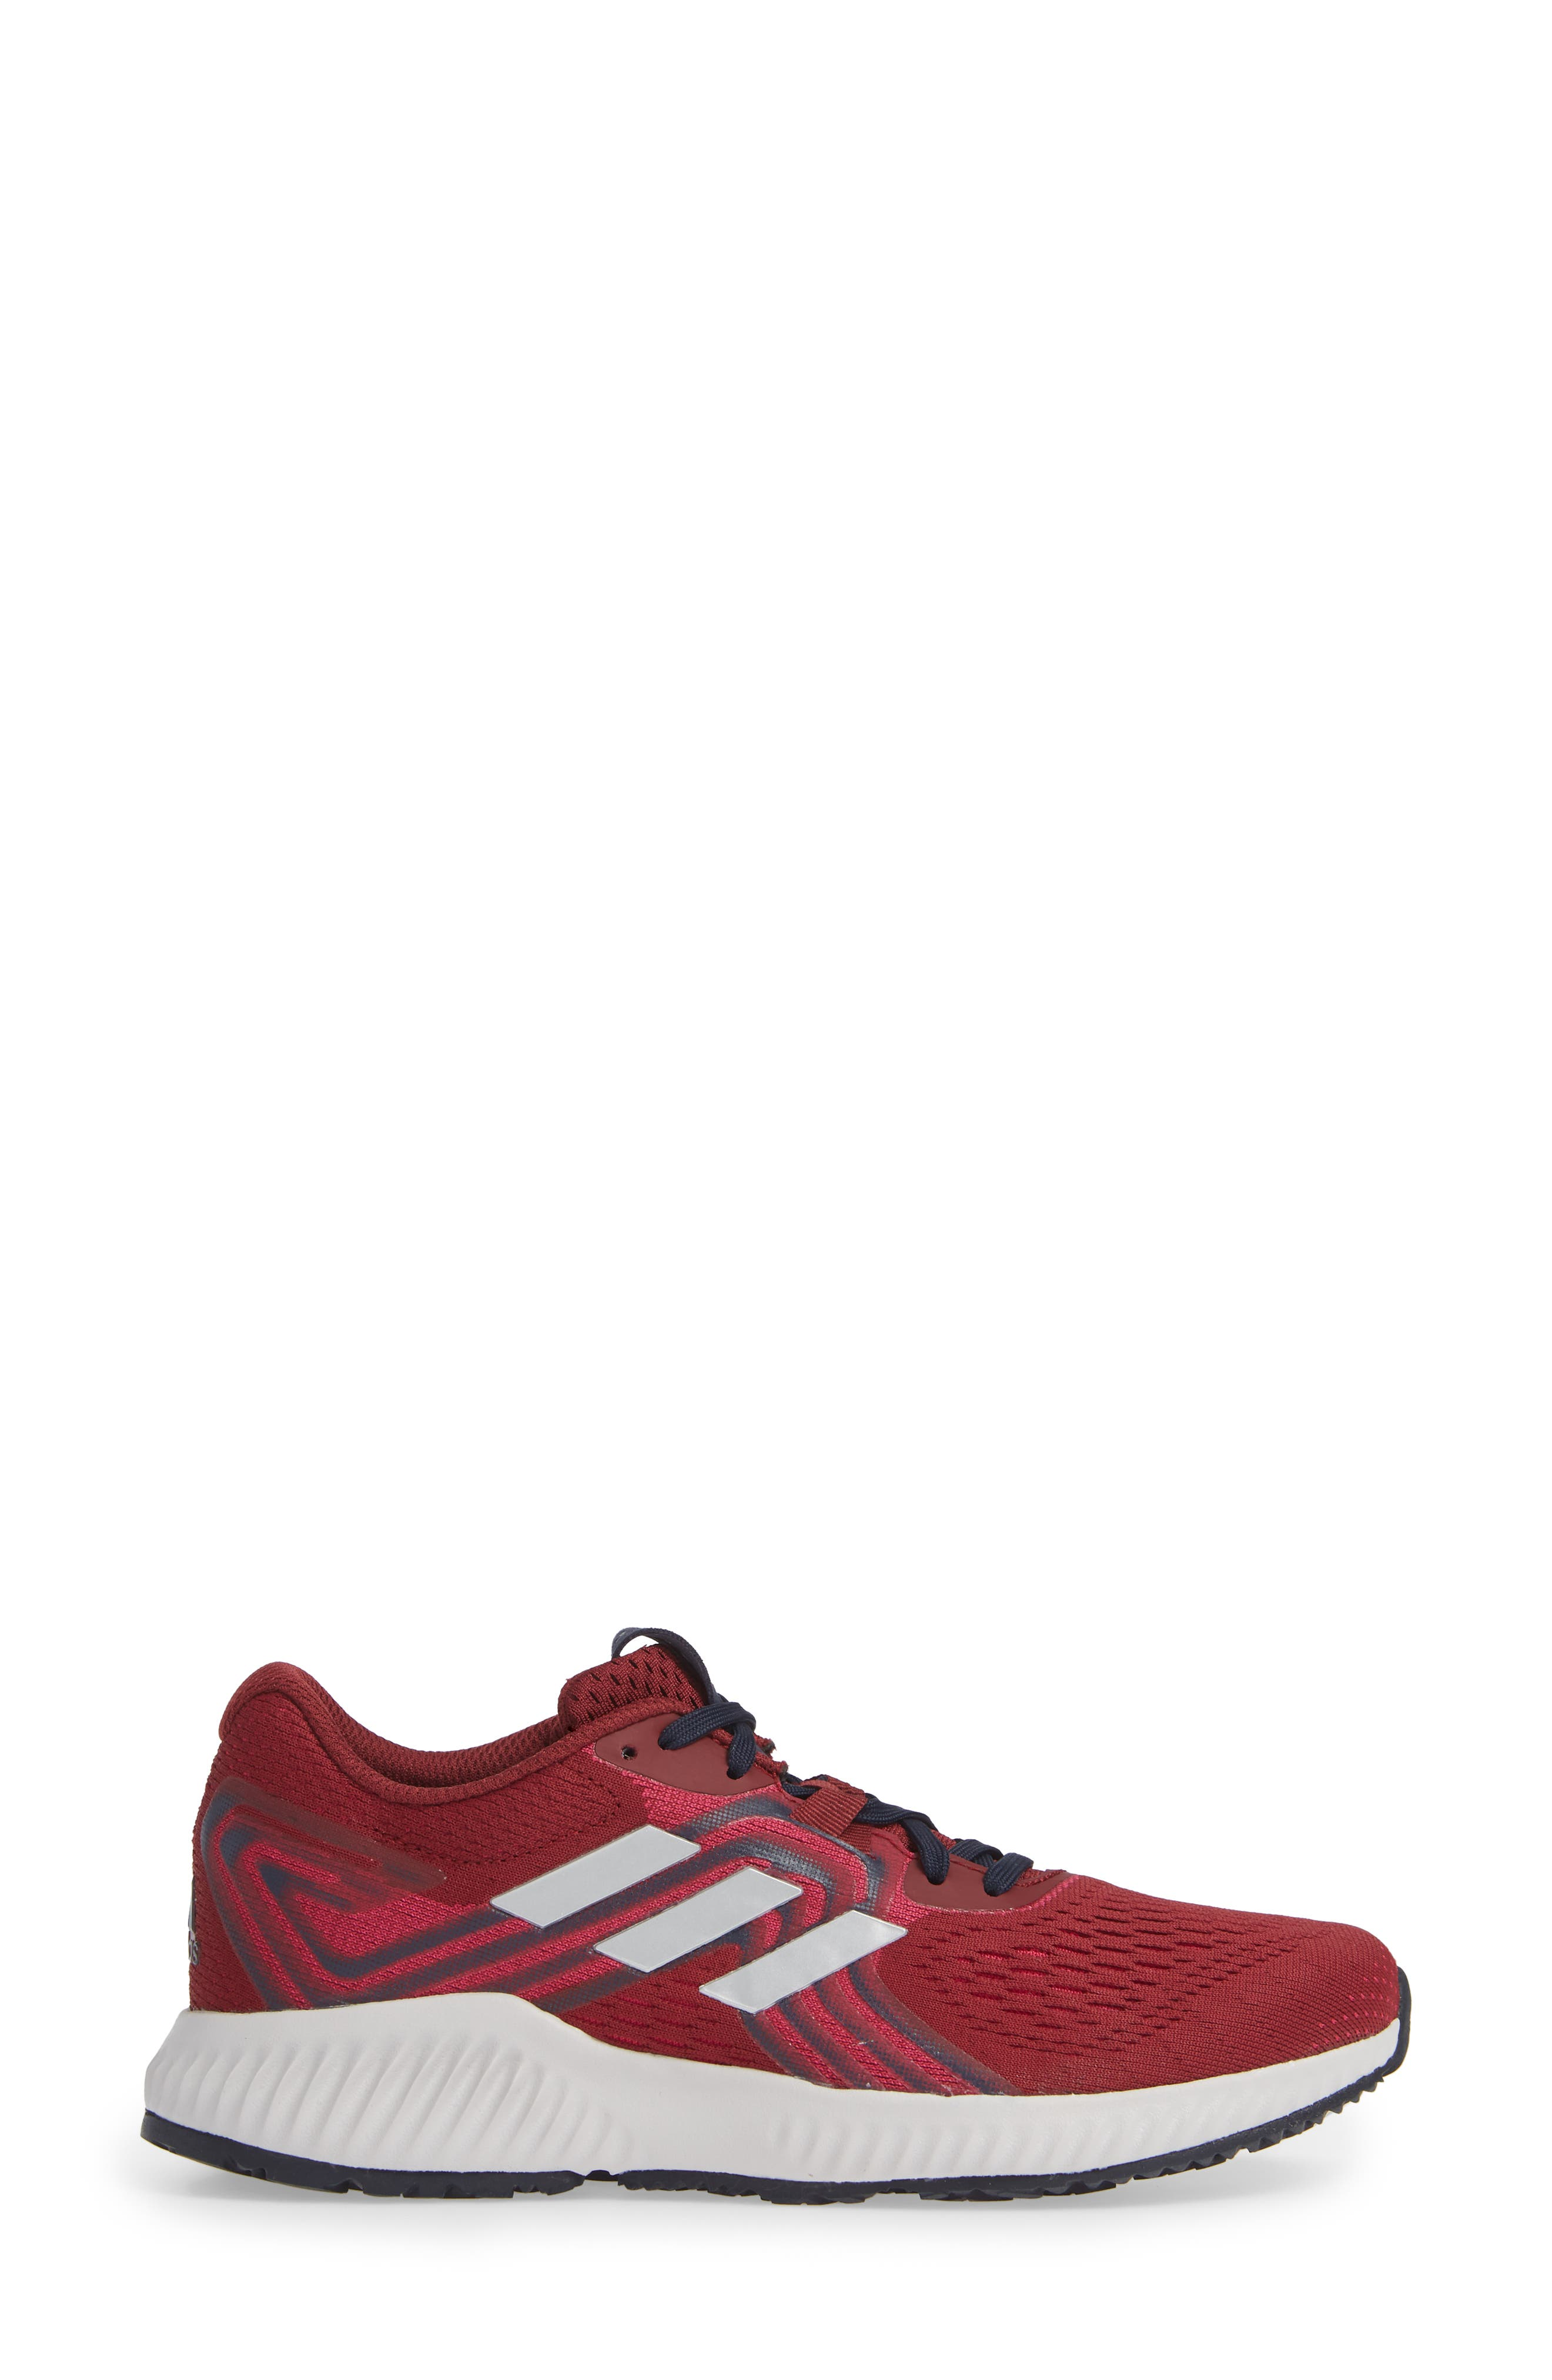 AeroBounce 2 Running Shoe,                             Alternate thumbnail 3, color,                             NOBLE MAROON/ SILVER/ MAGENTA